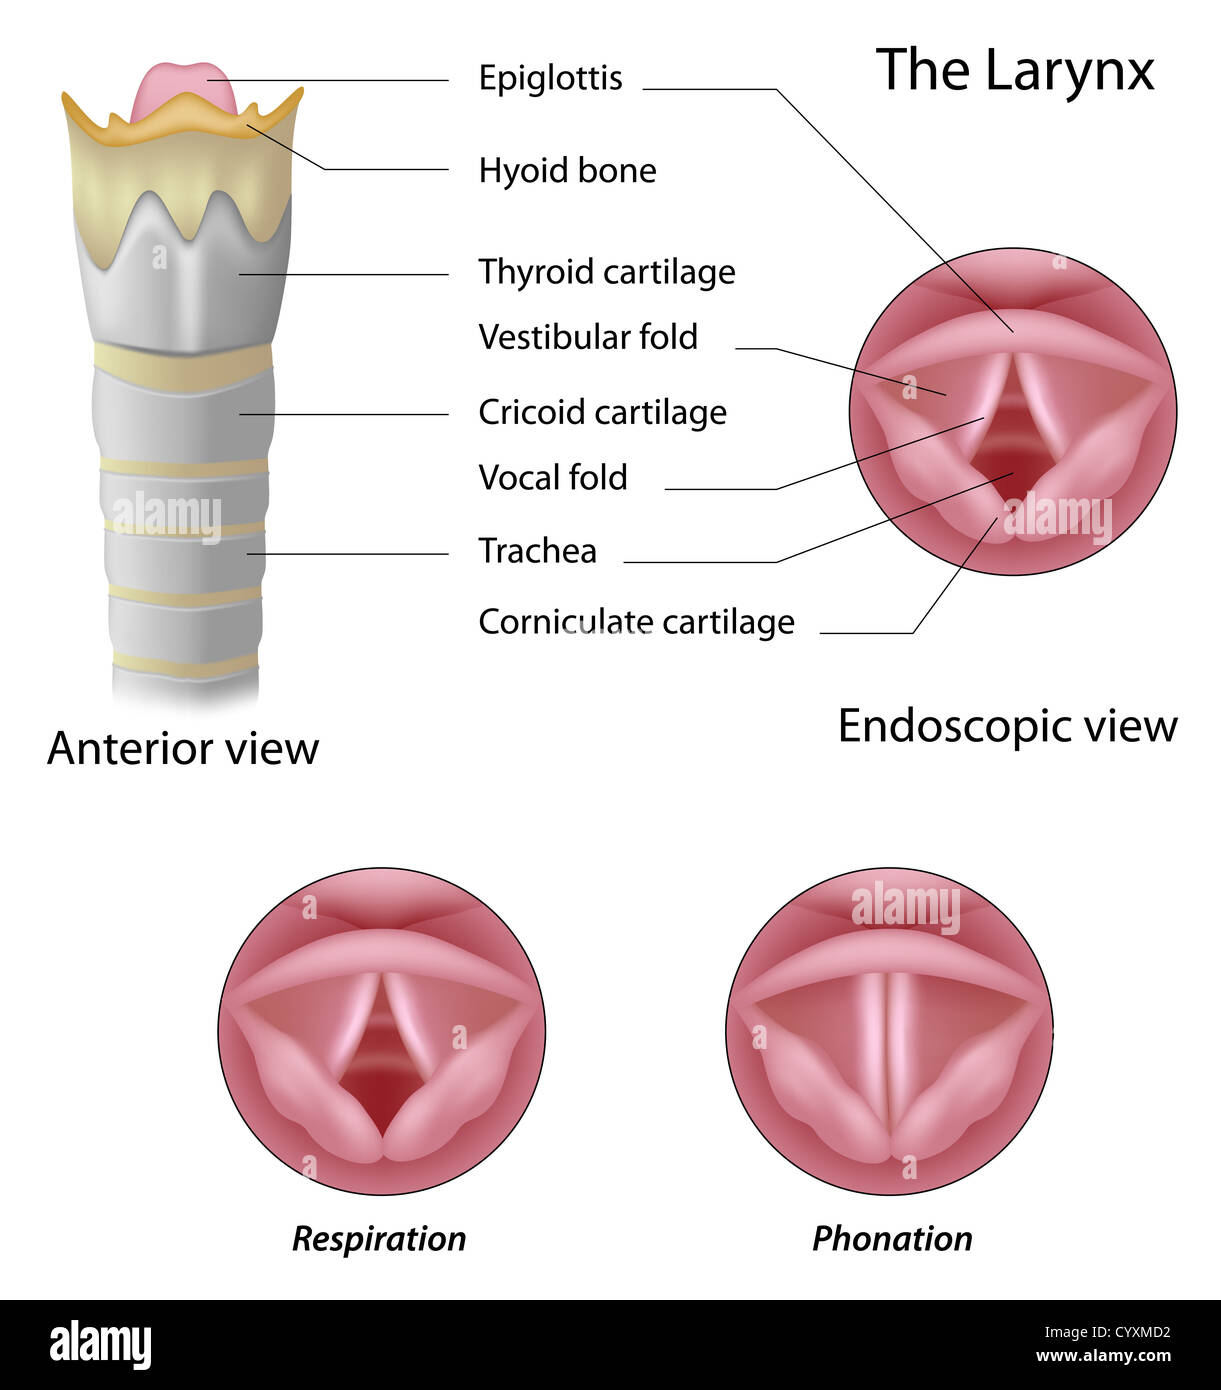 Vocal Cords And Larynx Stockfotos & Vocal Cords And Larynx Bilder ...